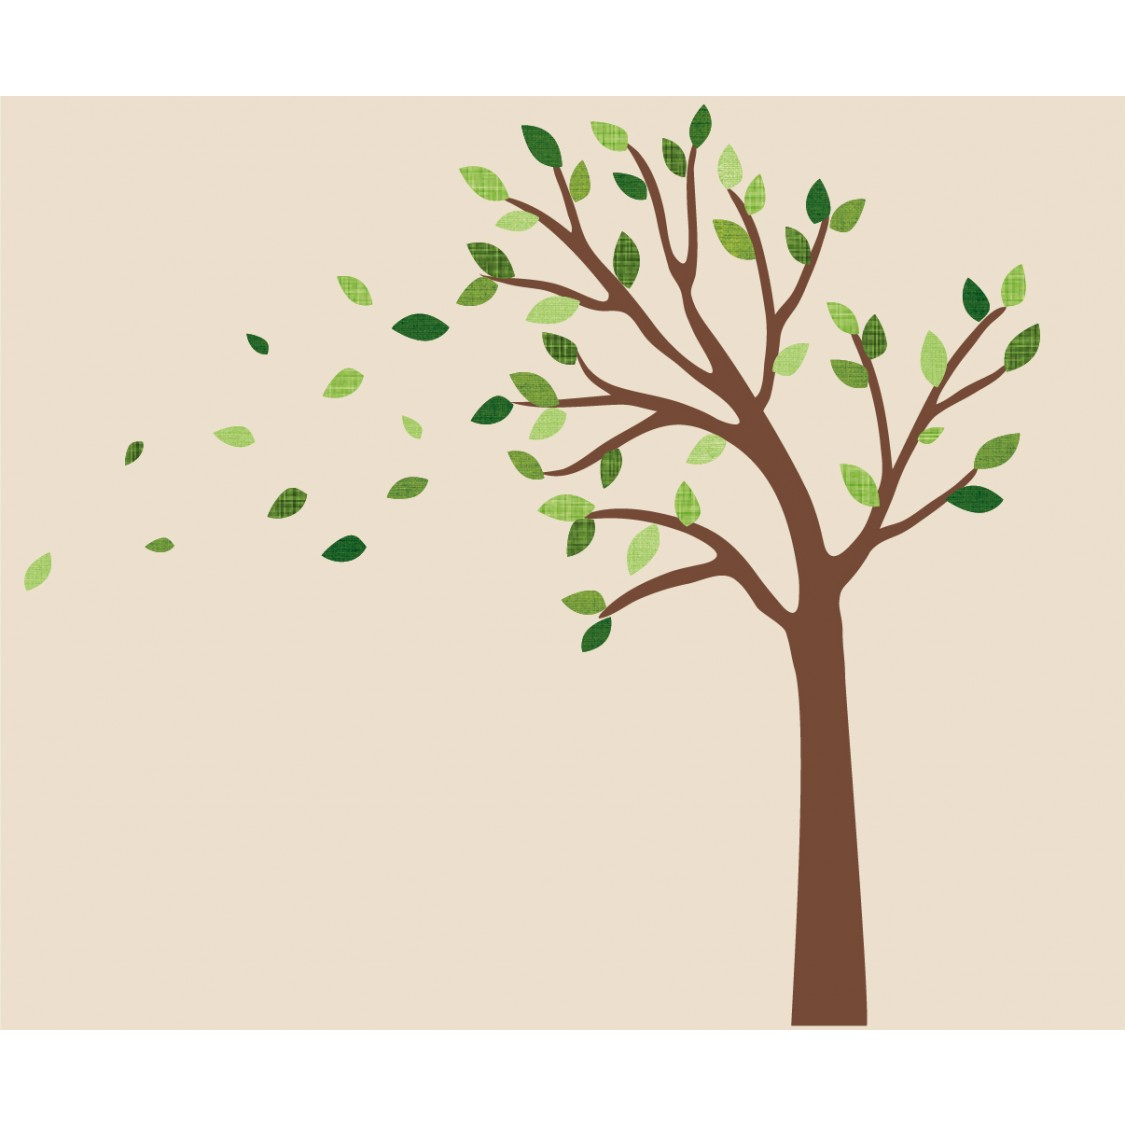 Green and Blowing Wall Stickers Tree For Nursery Or Baby Room